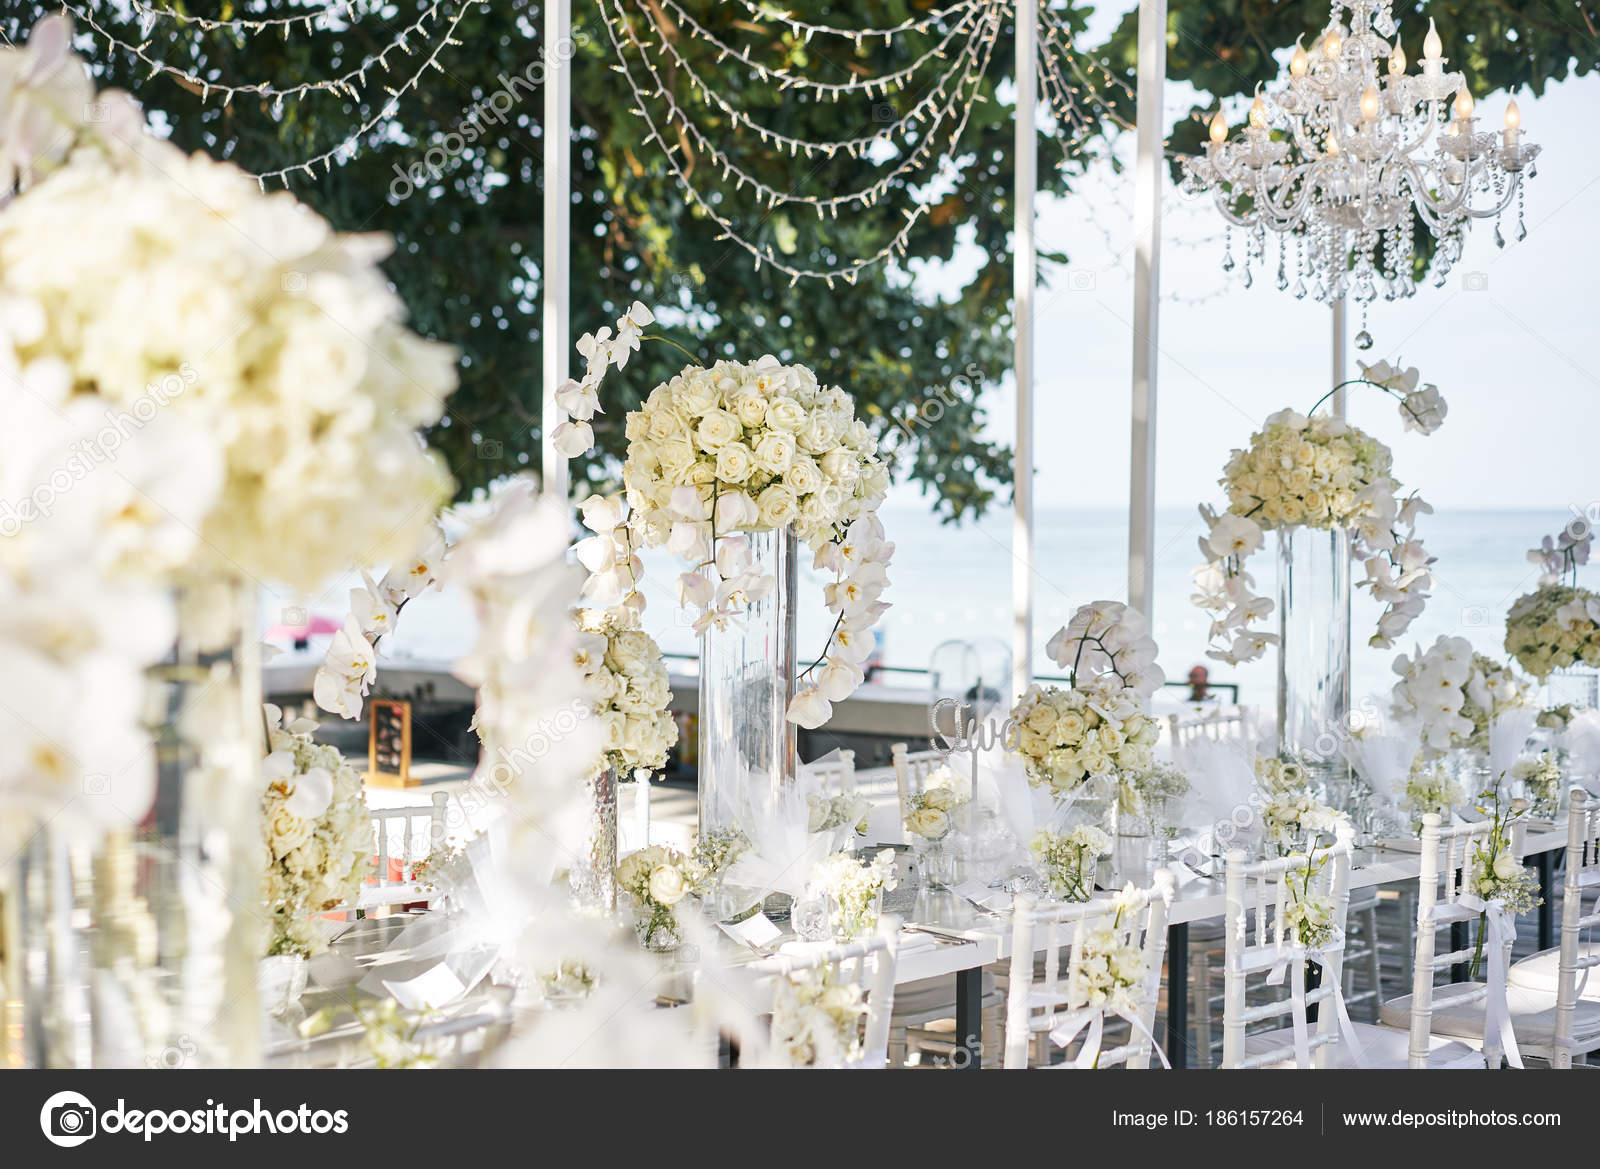 Wedding Venue Reception Dinner Table Decorated White Orchids White ...